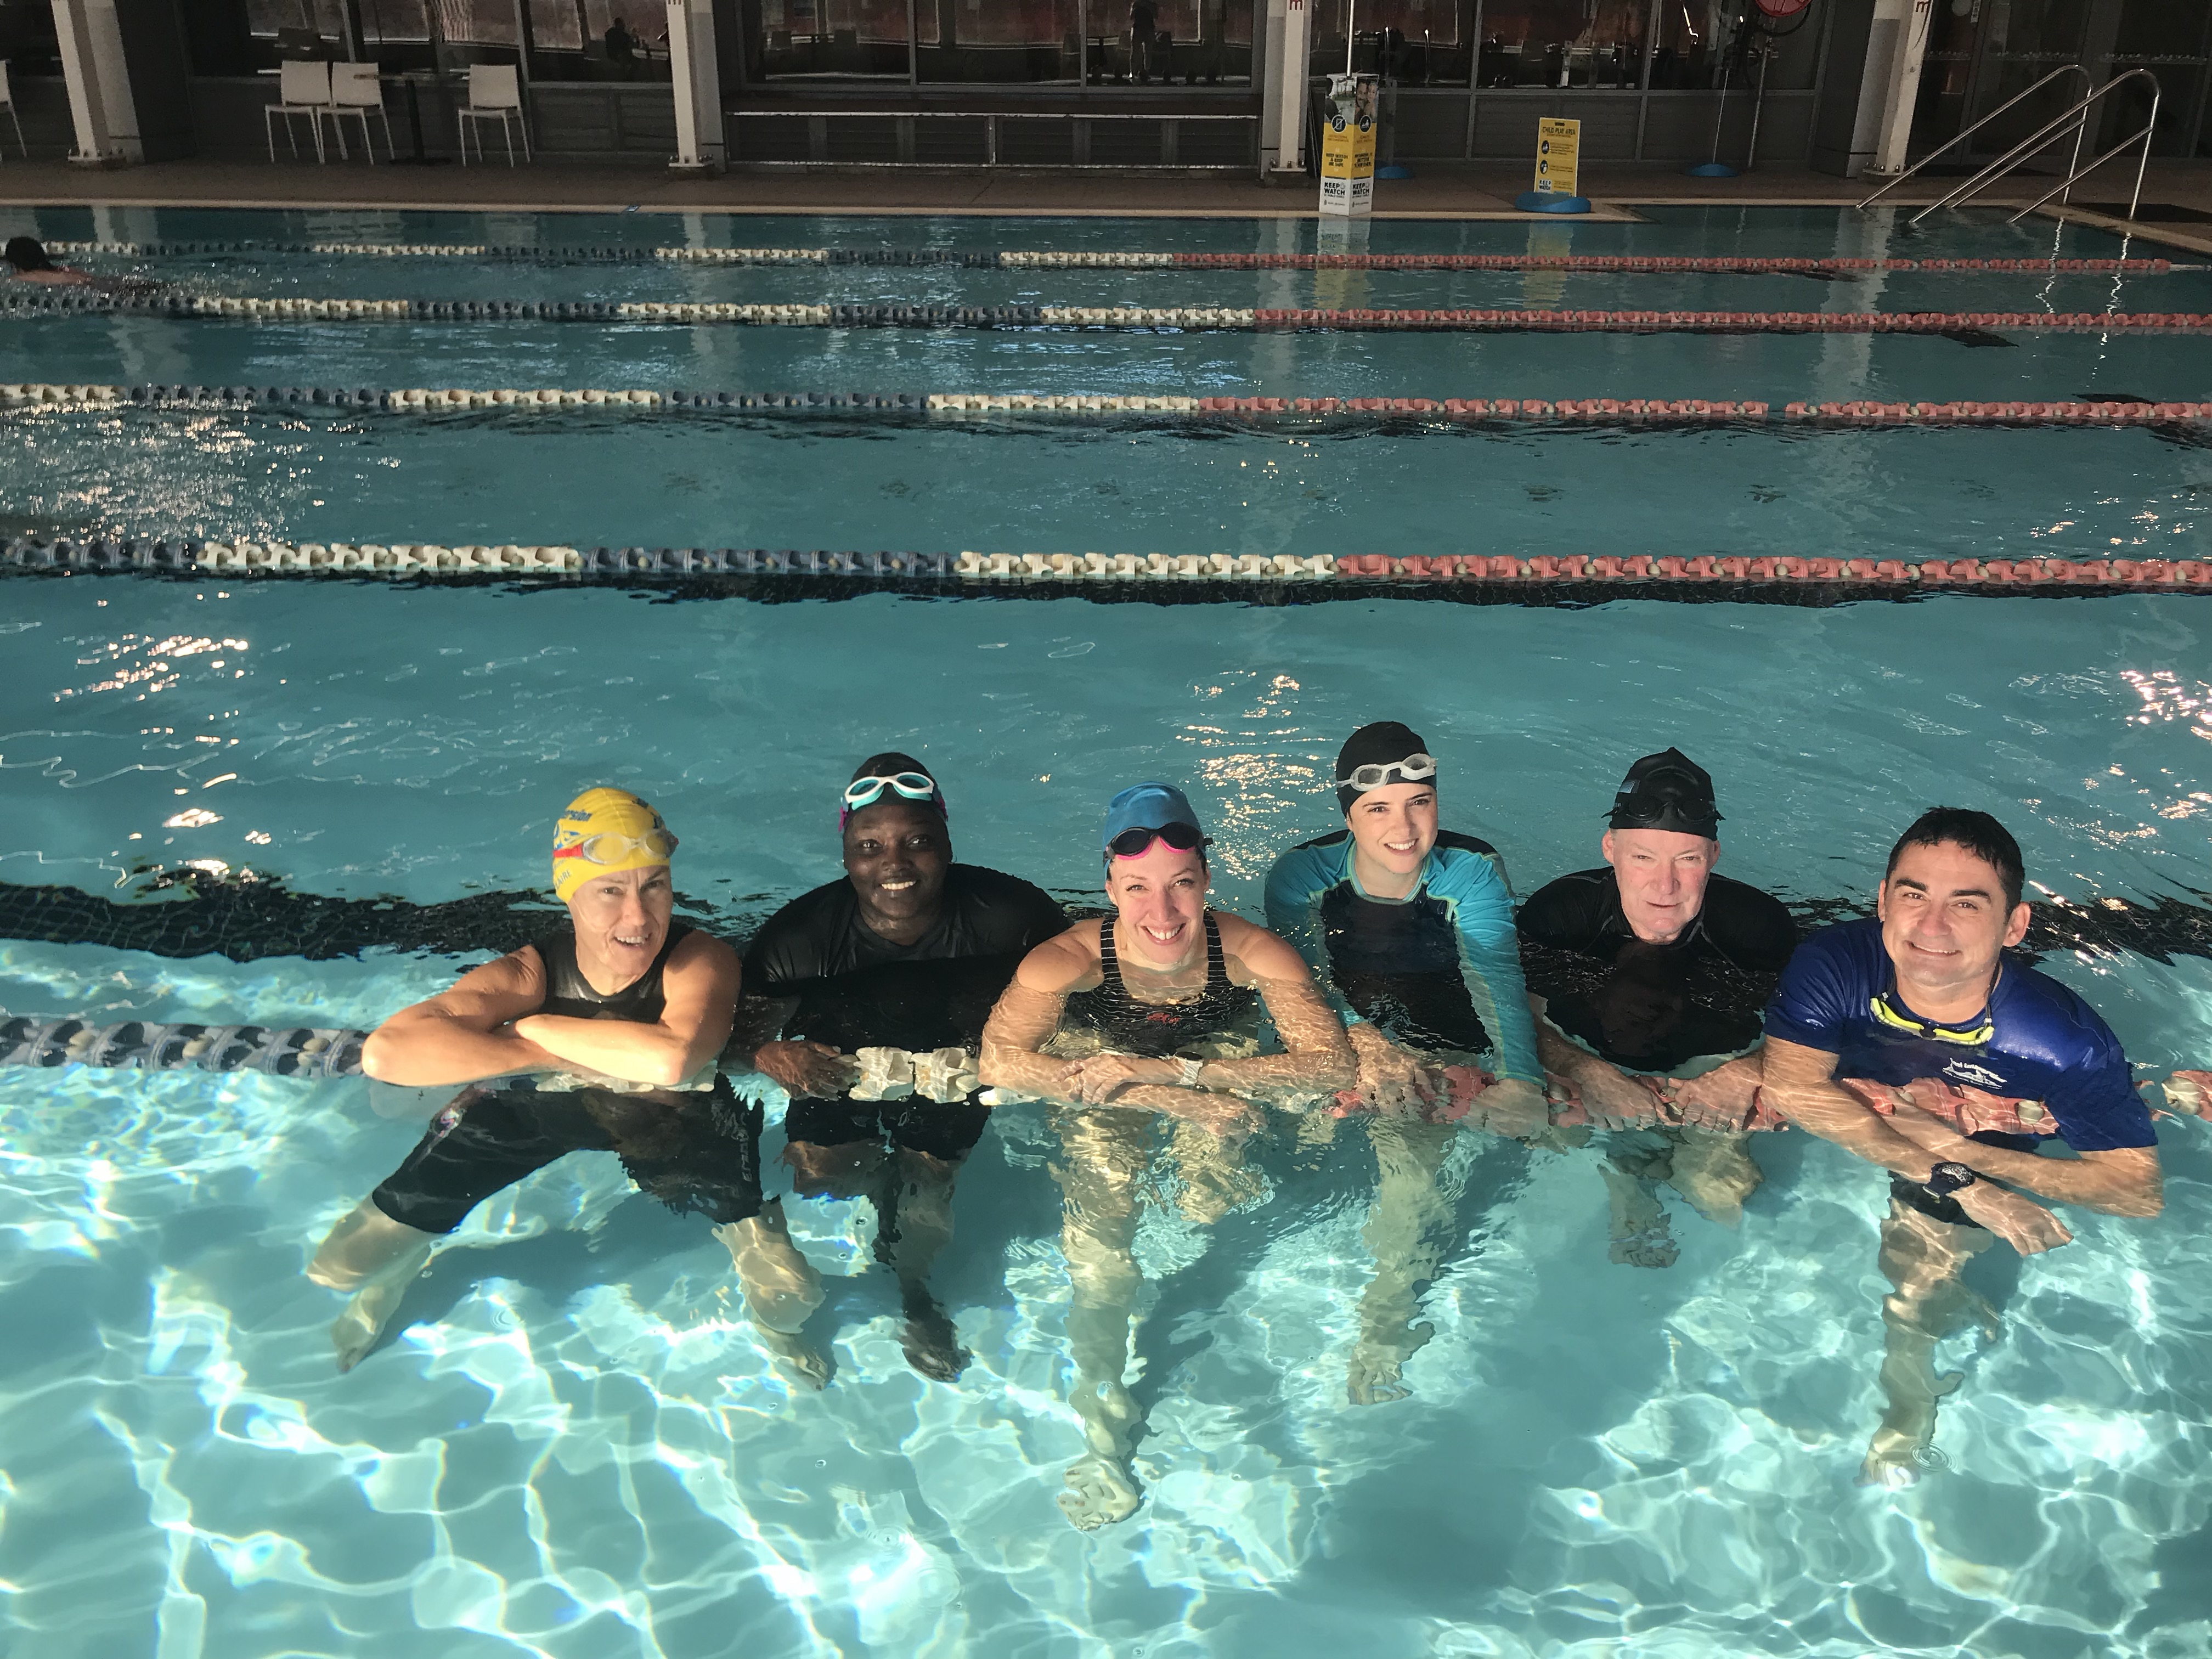 Is a Total Immersion Swim Program the right choice for me?